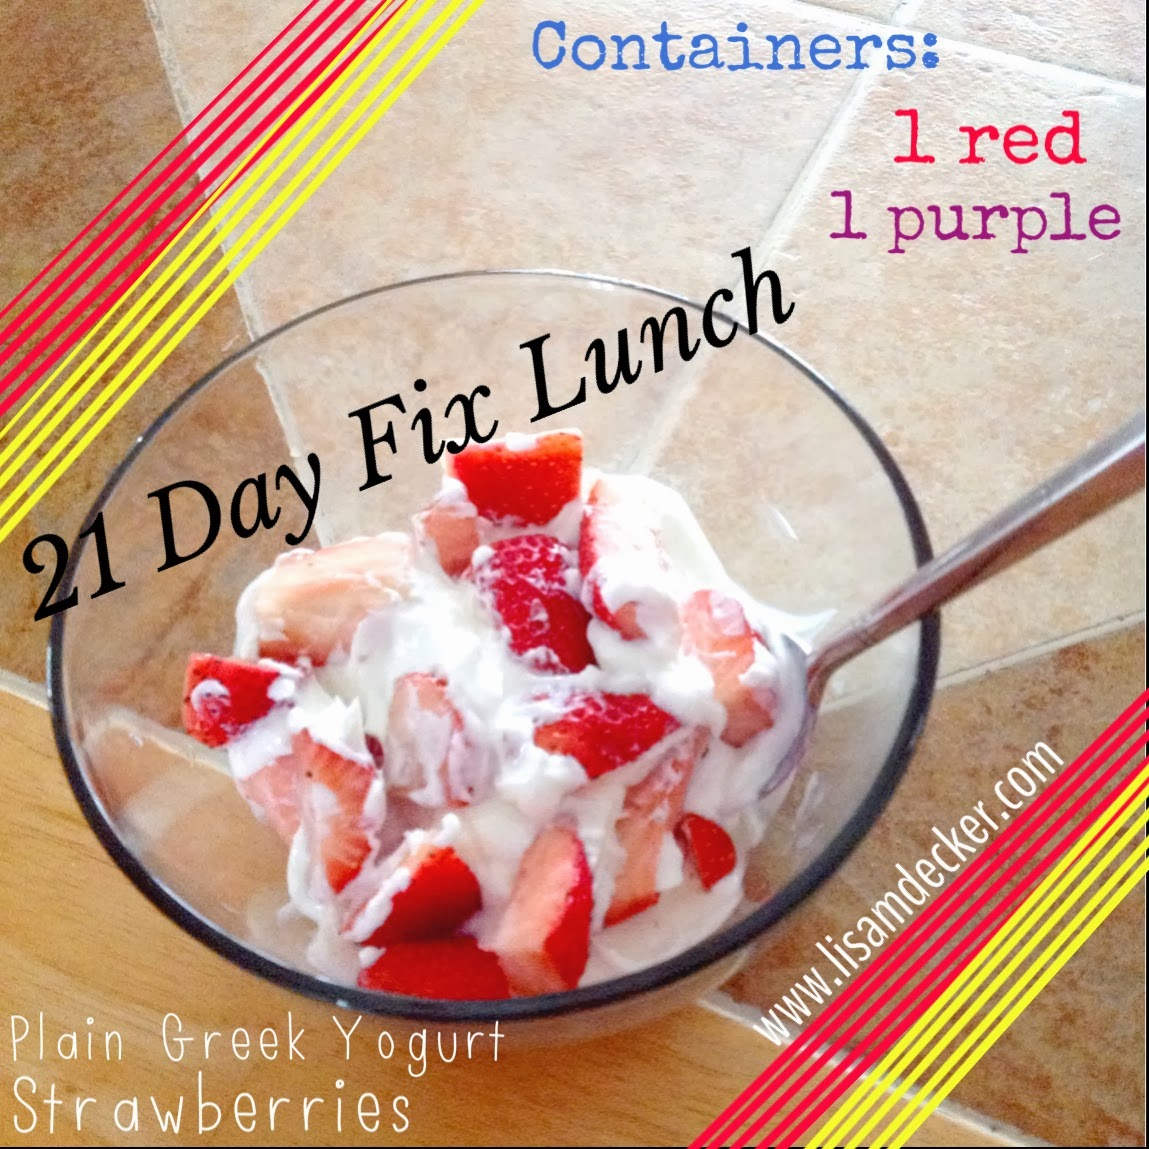 21 Day Fix Snack or Lunch, Greek Yogurt, Strawberries